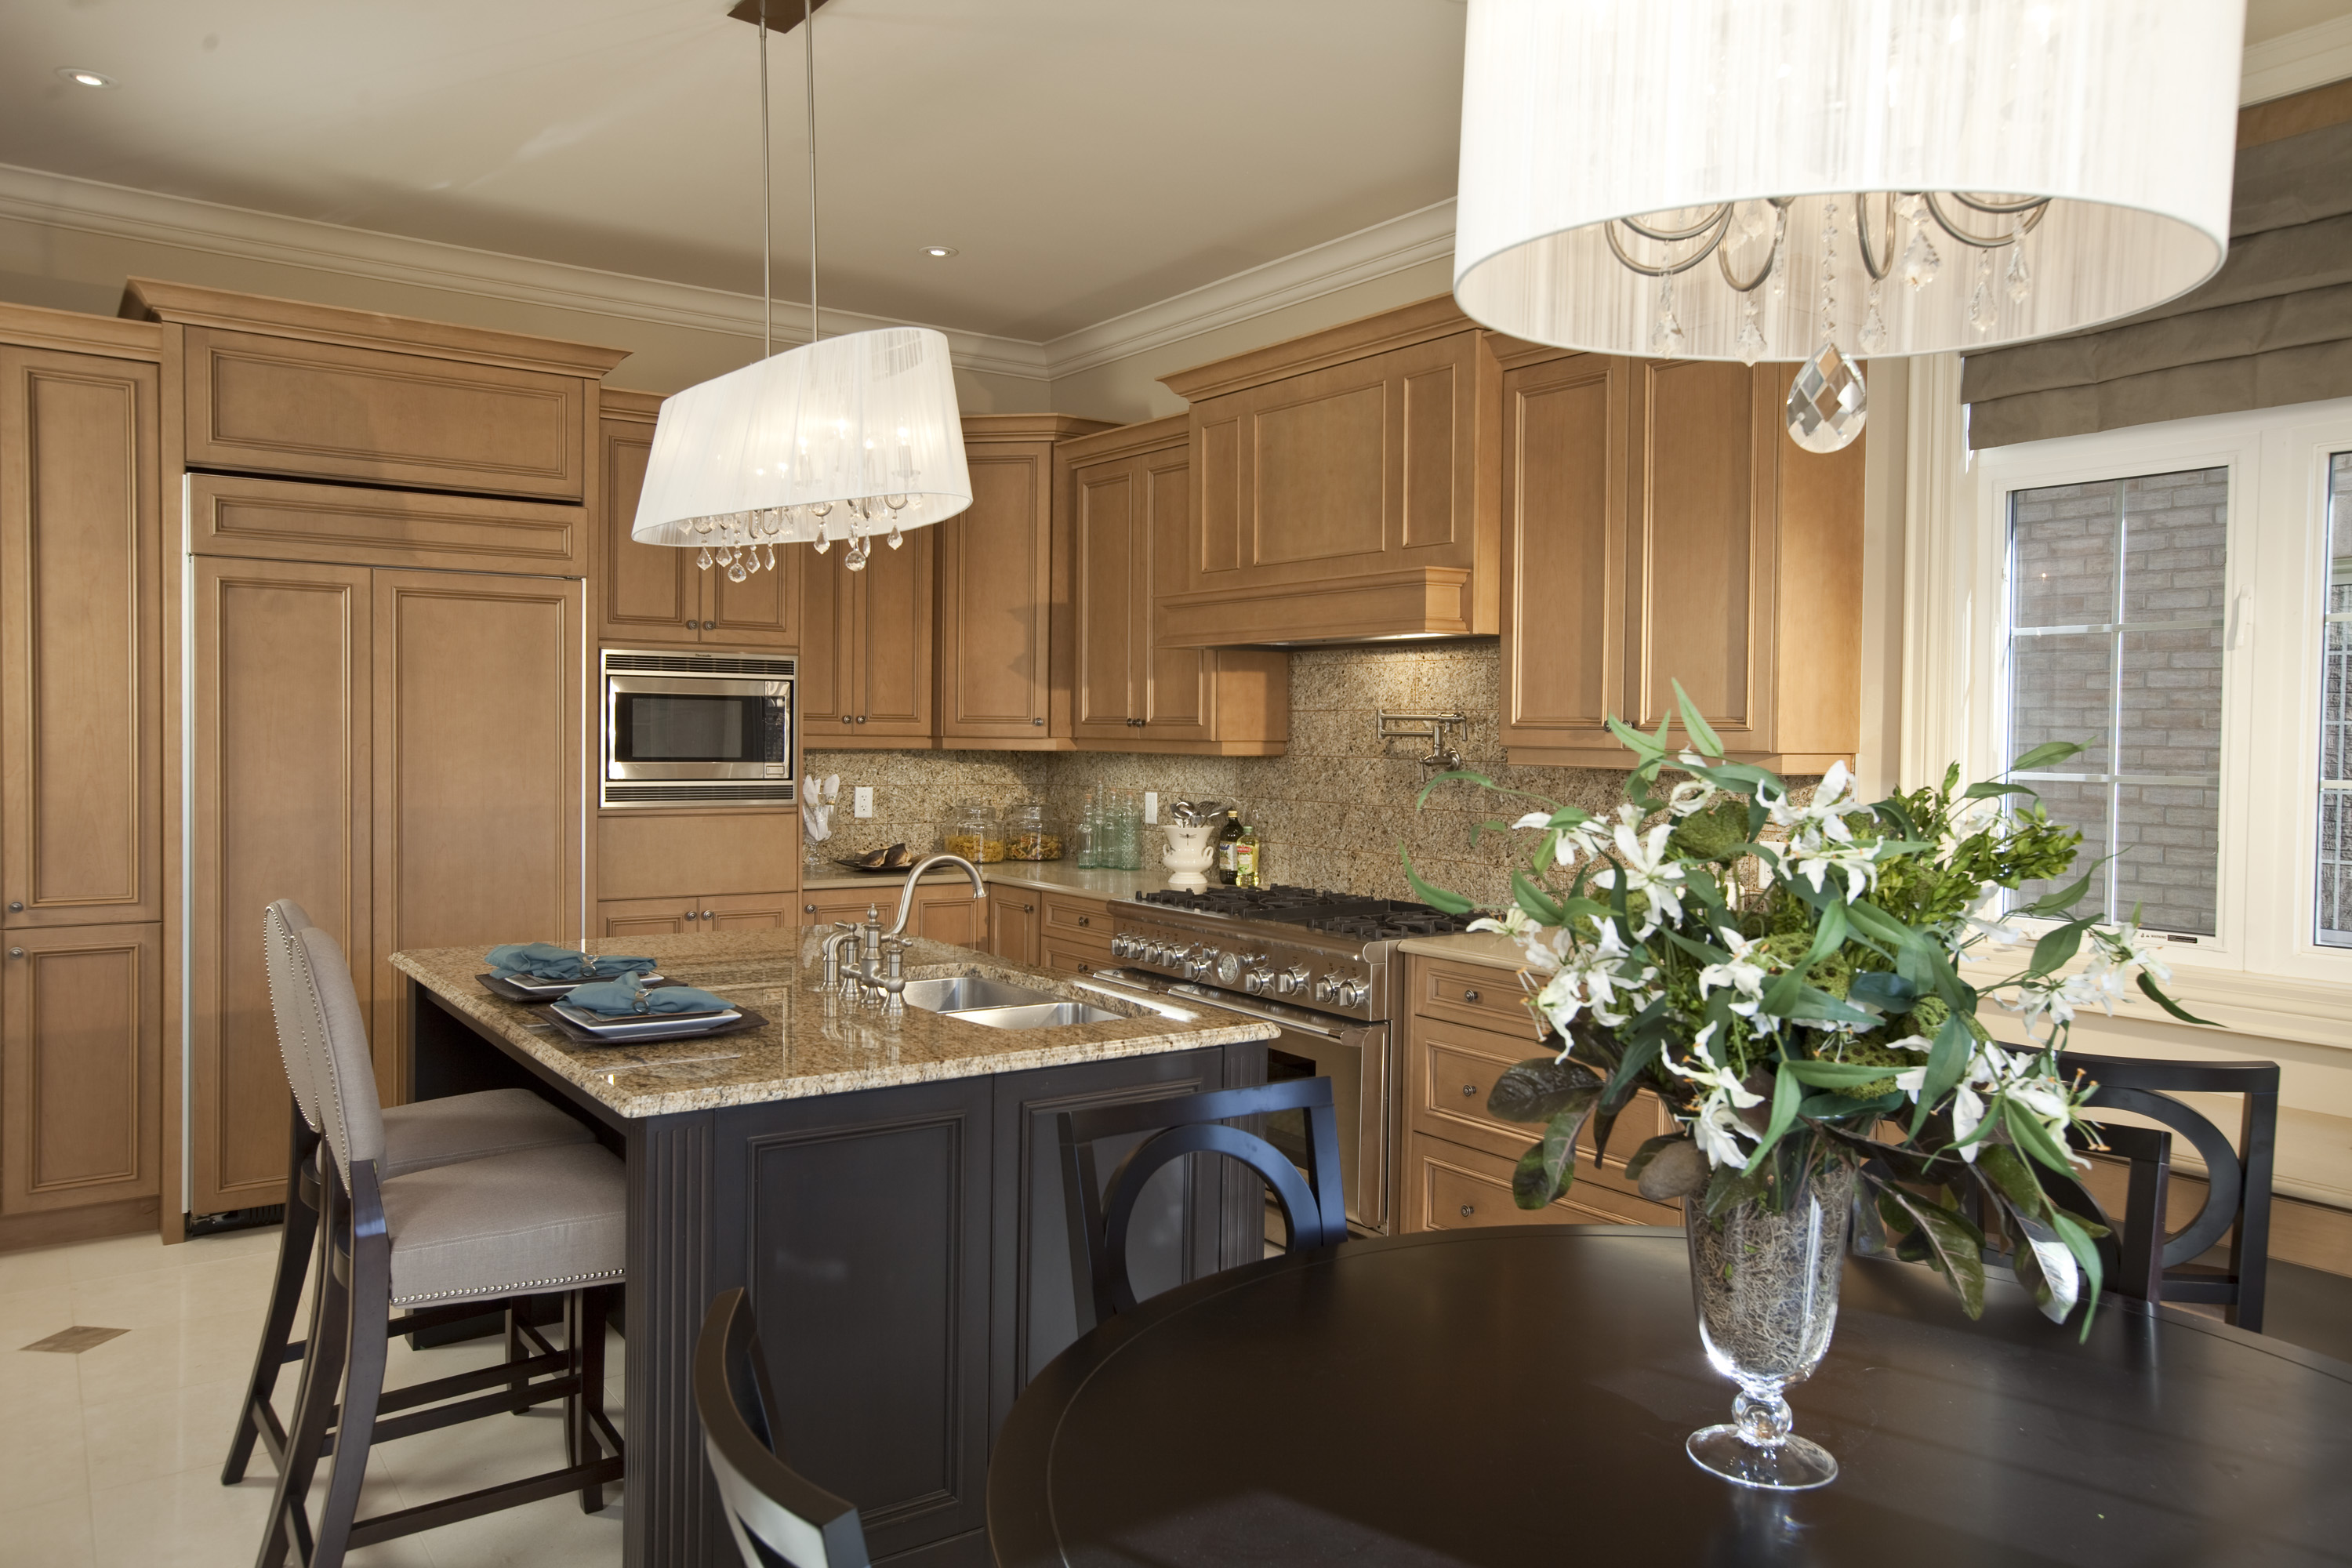 introducing vaughan valley s model home see all vaughan valley model home